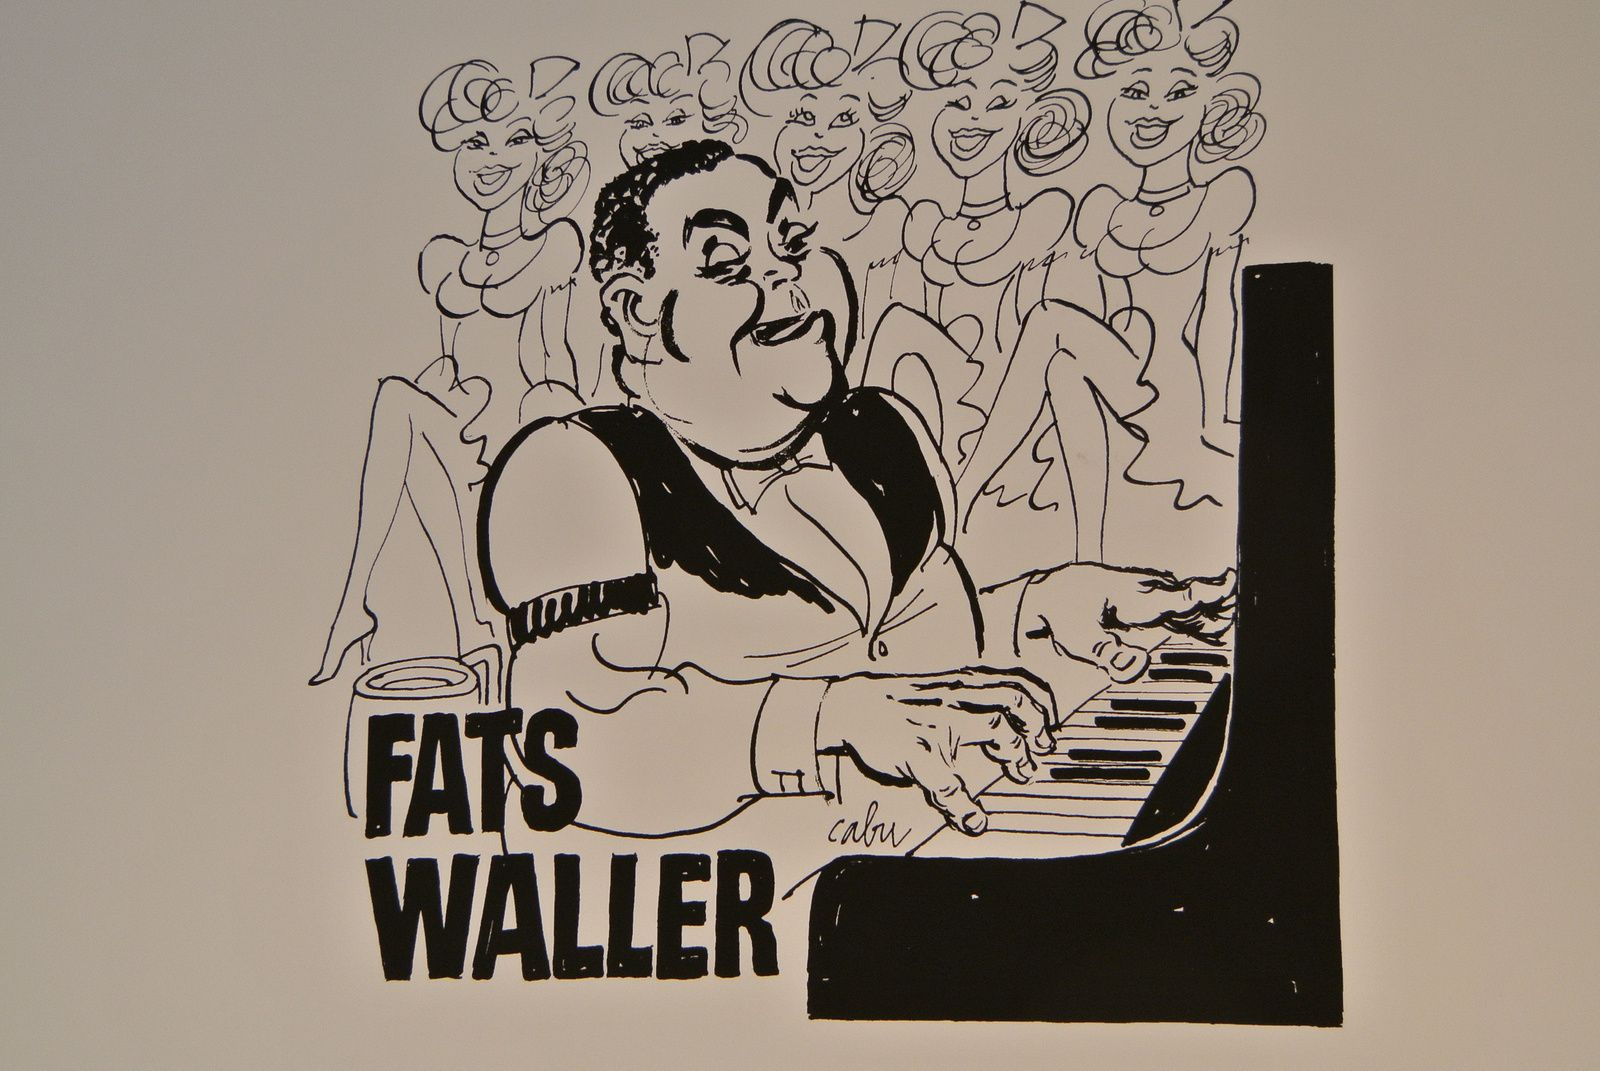 FATS WALLER SELON CABU: THE SHOW MUST GO ON